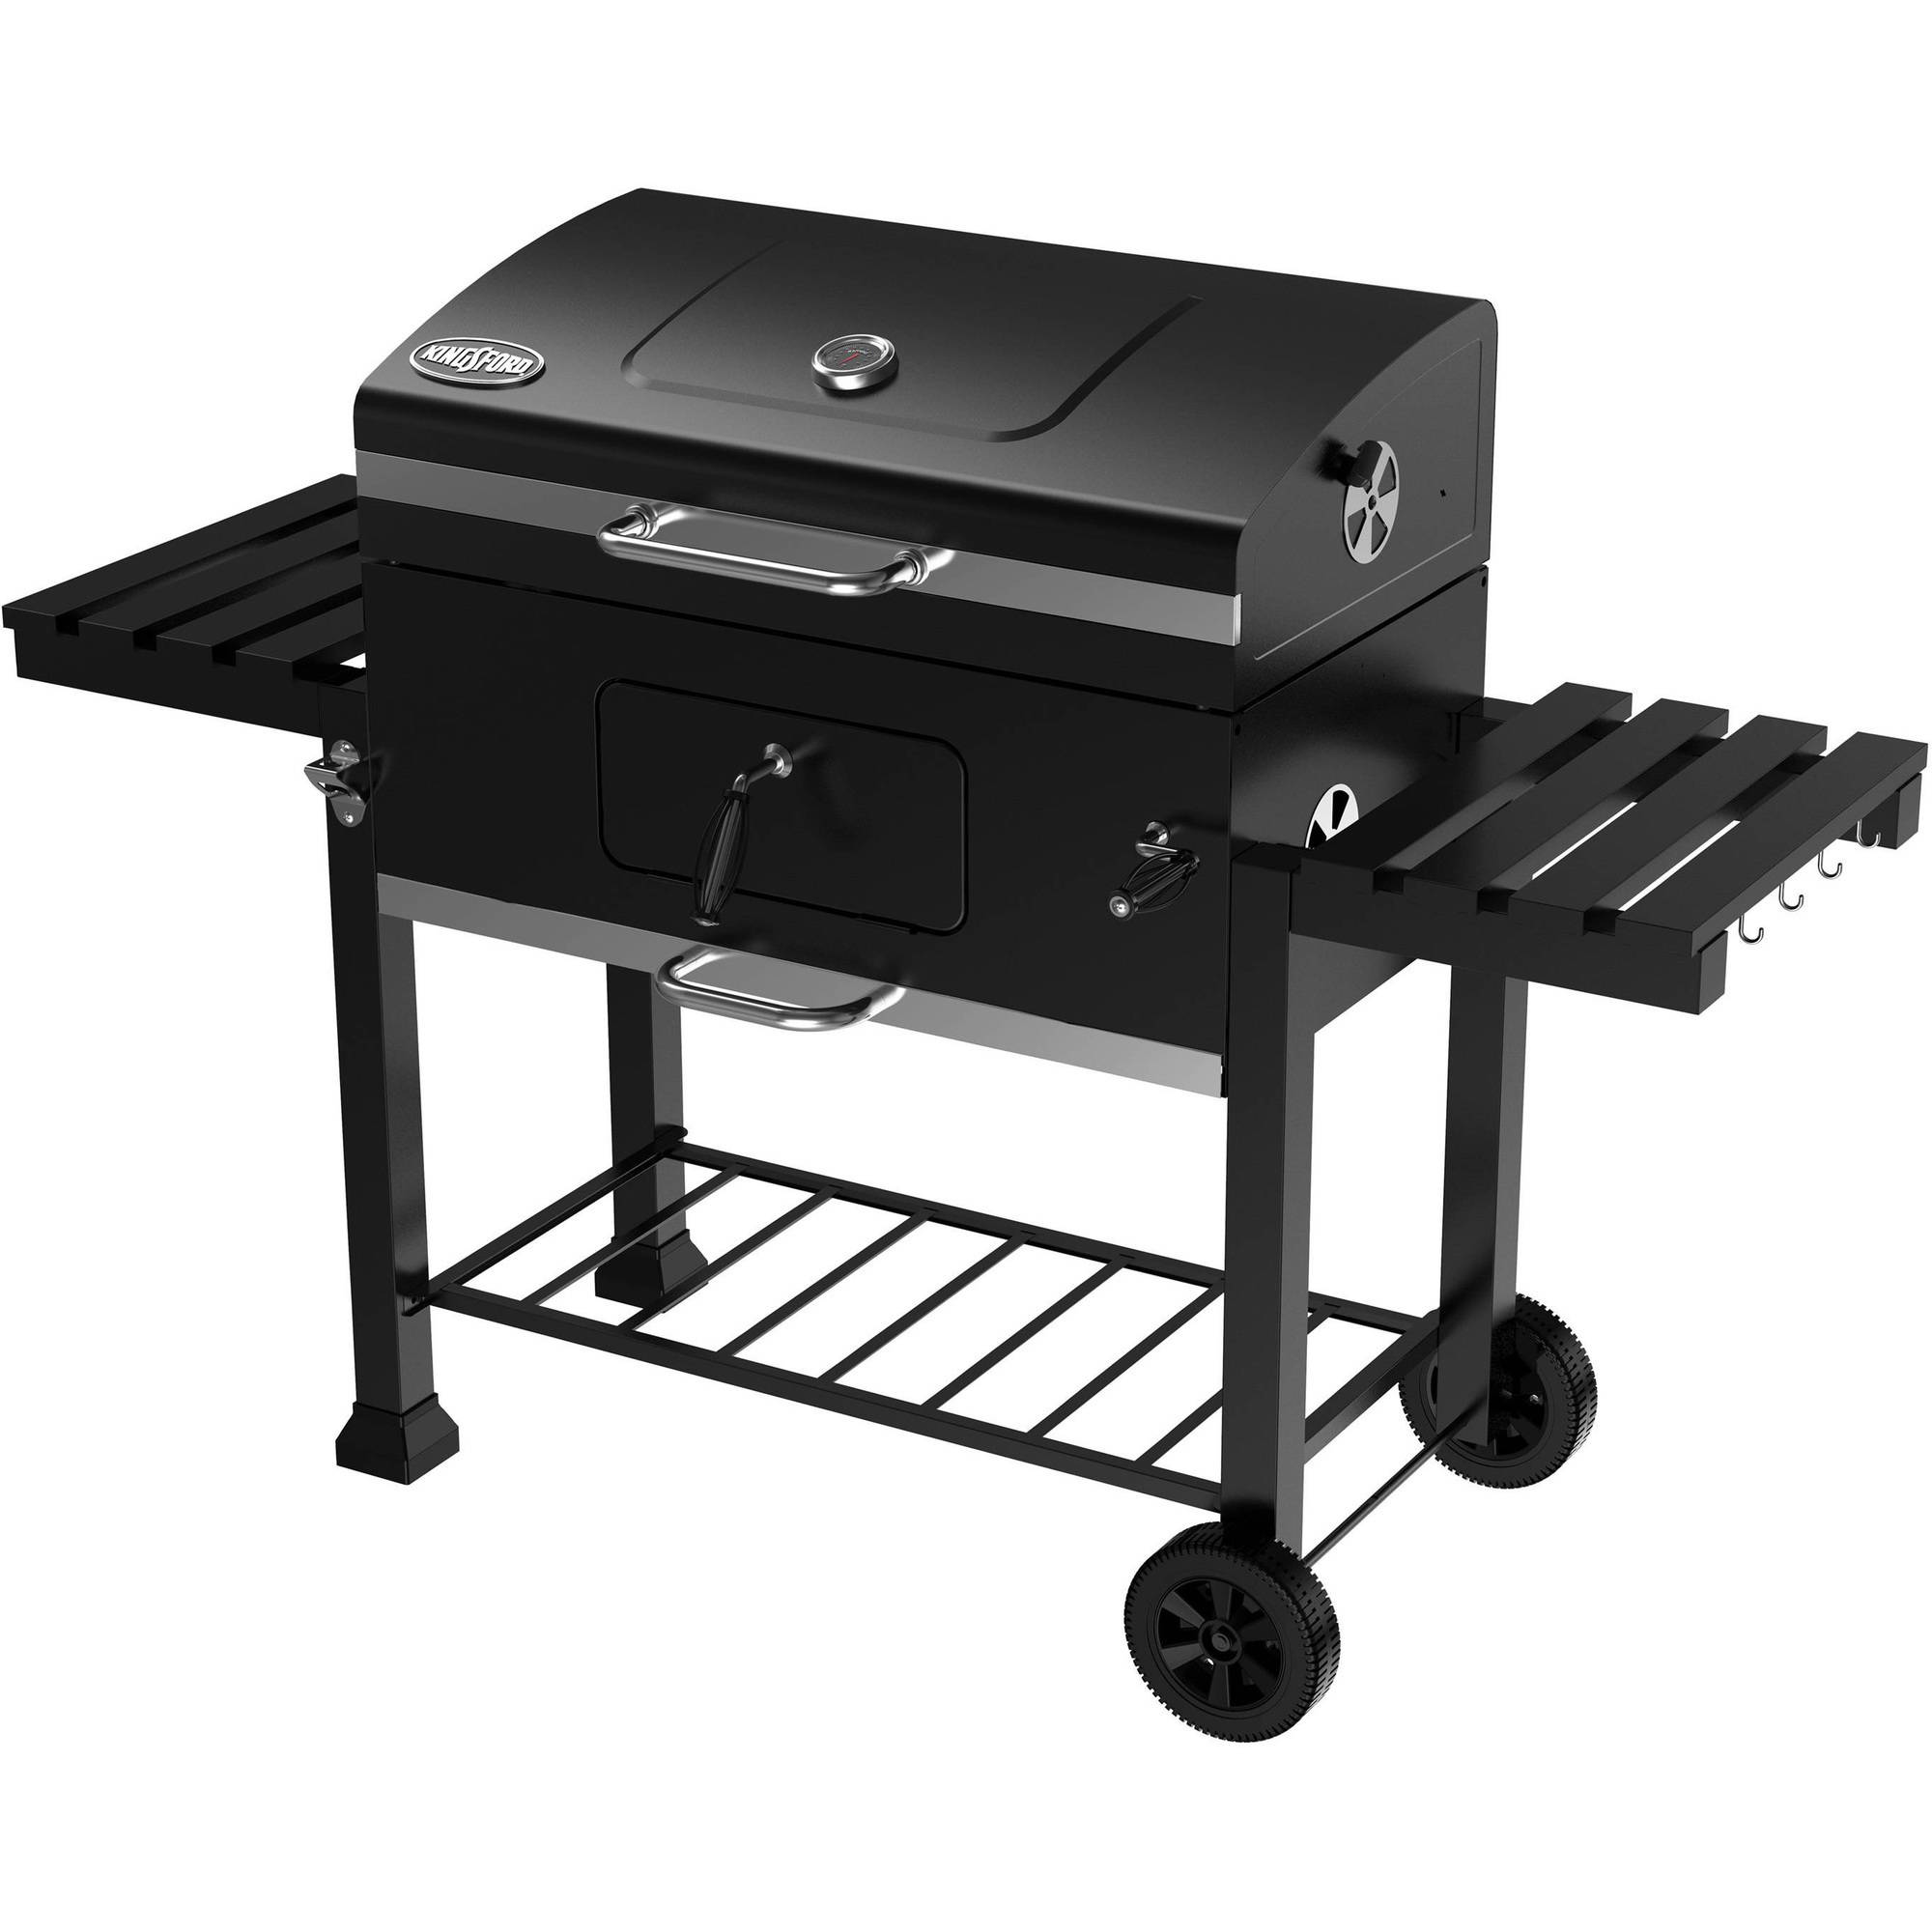 barbecue grill kingsford 32 PKAIGML